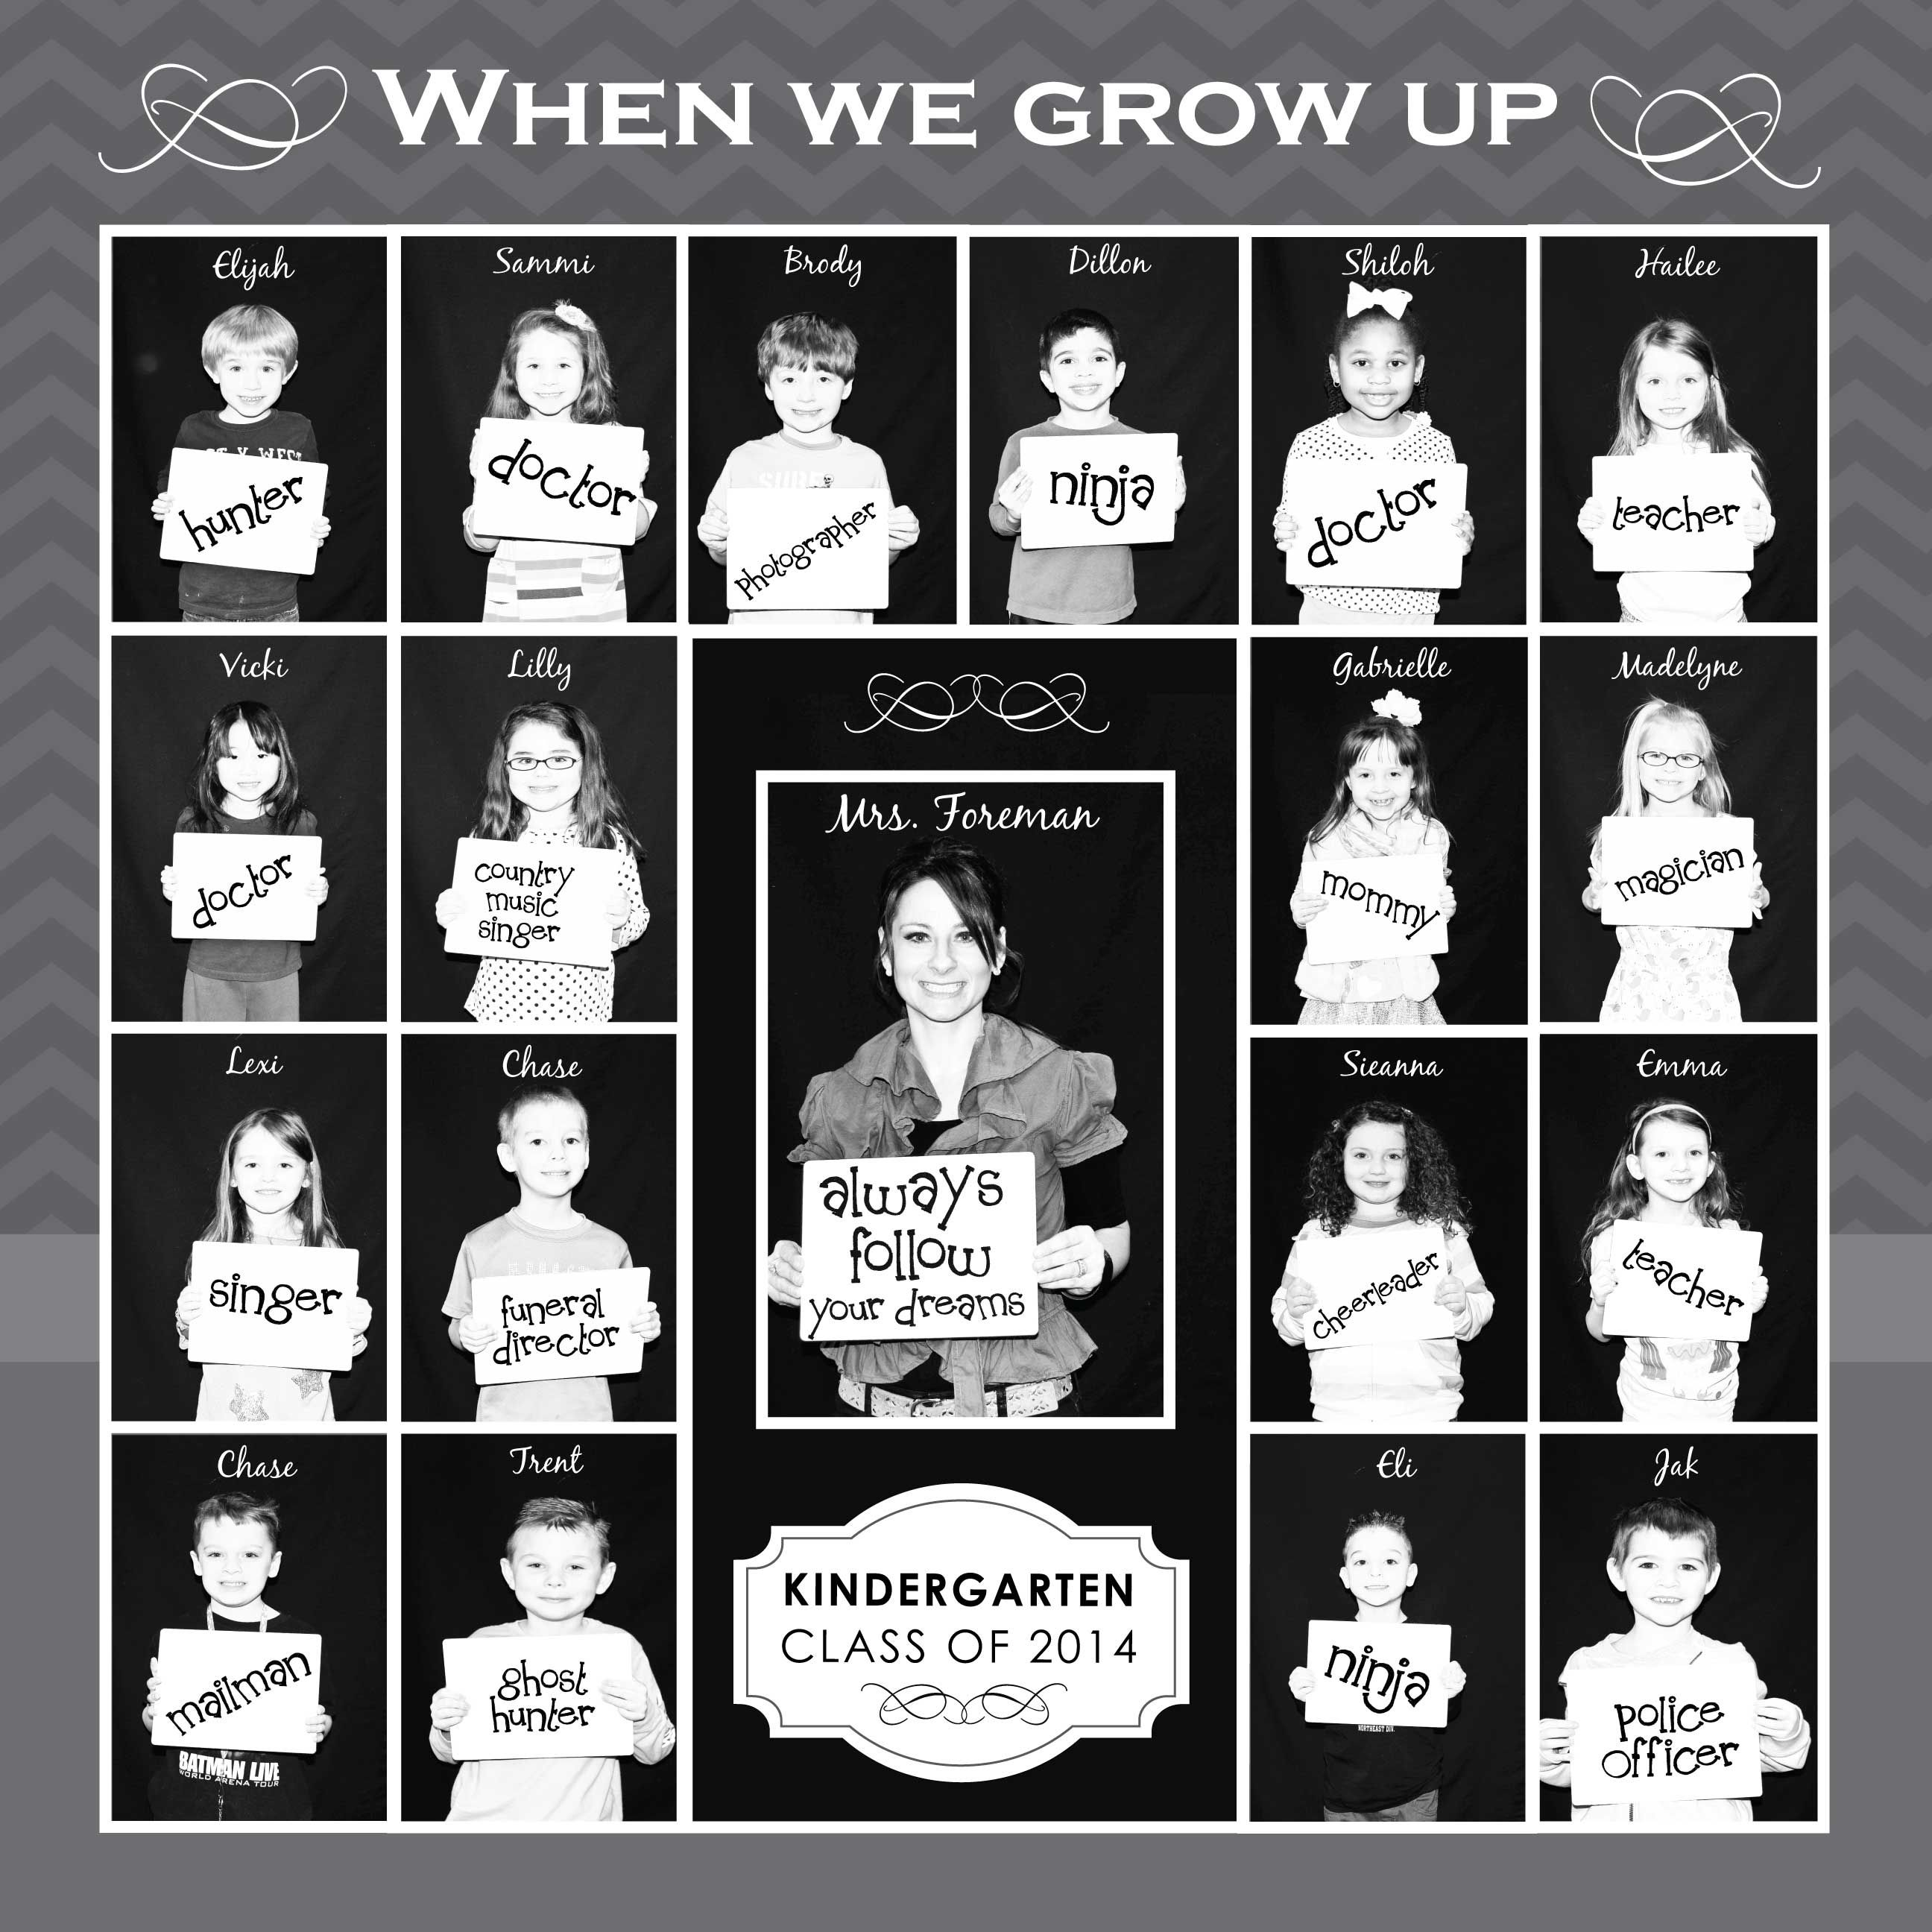 When I Grow Up Photo Collage | Graphic Design | Pinterest ...